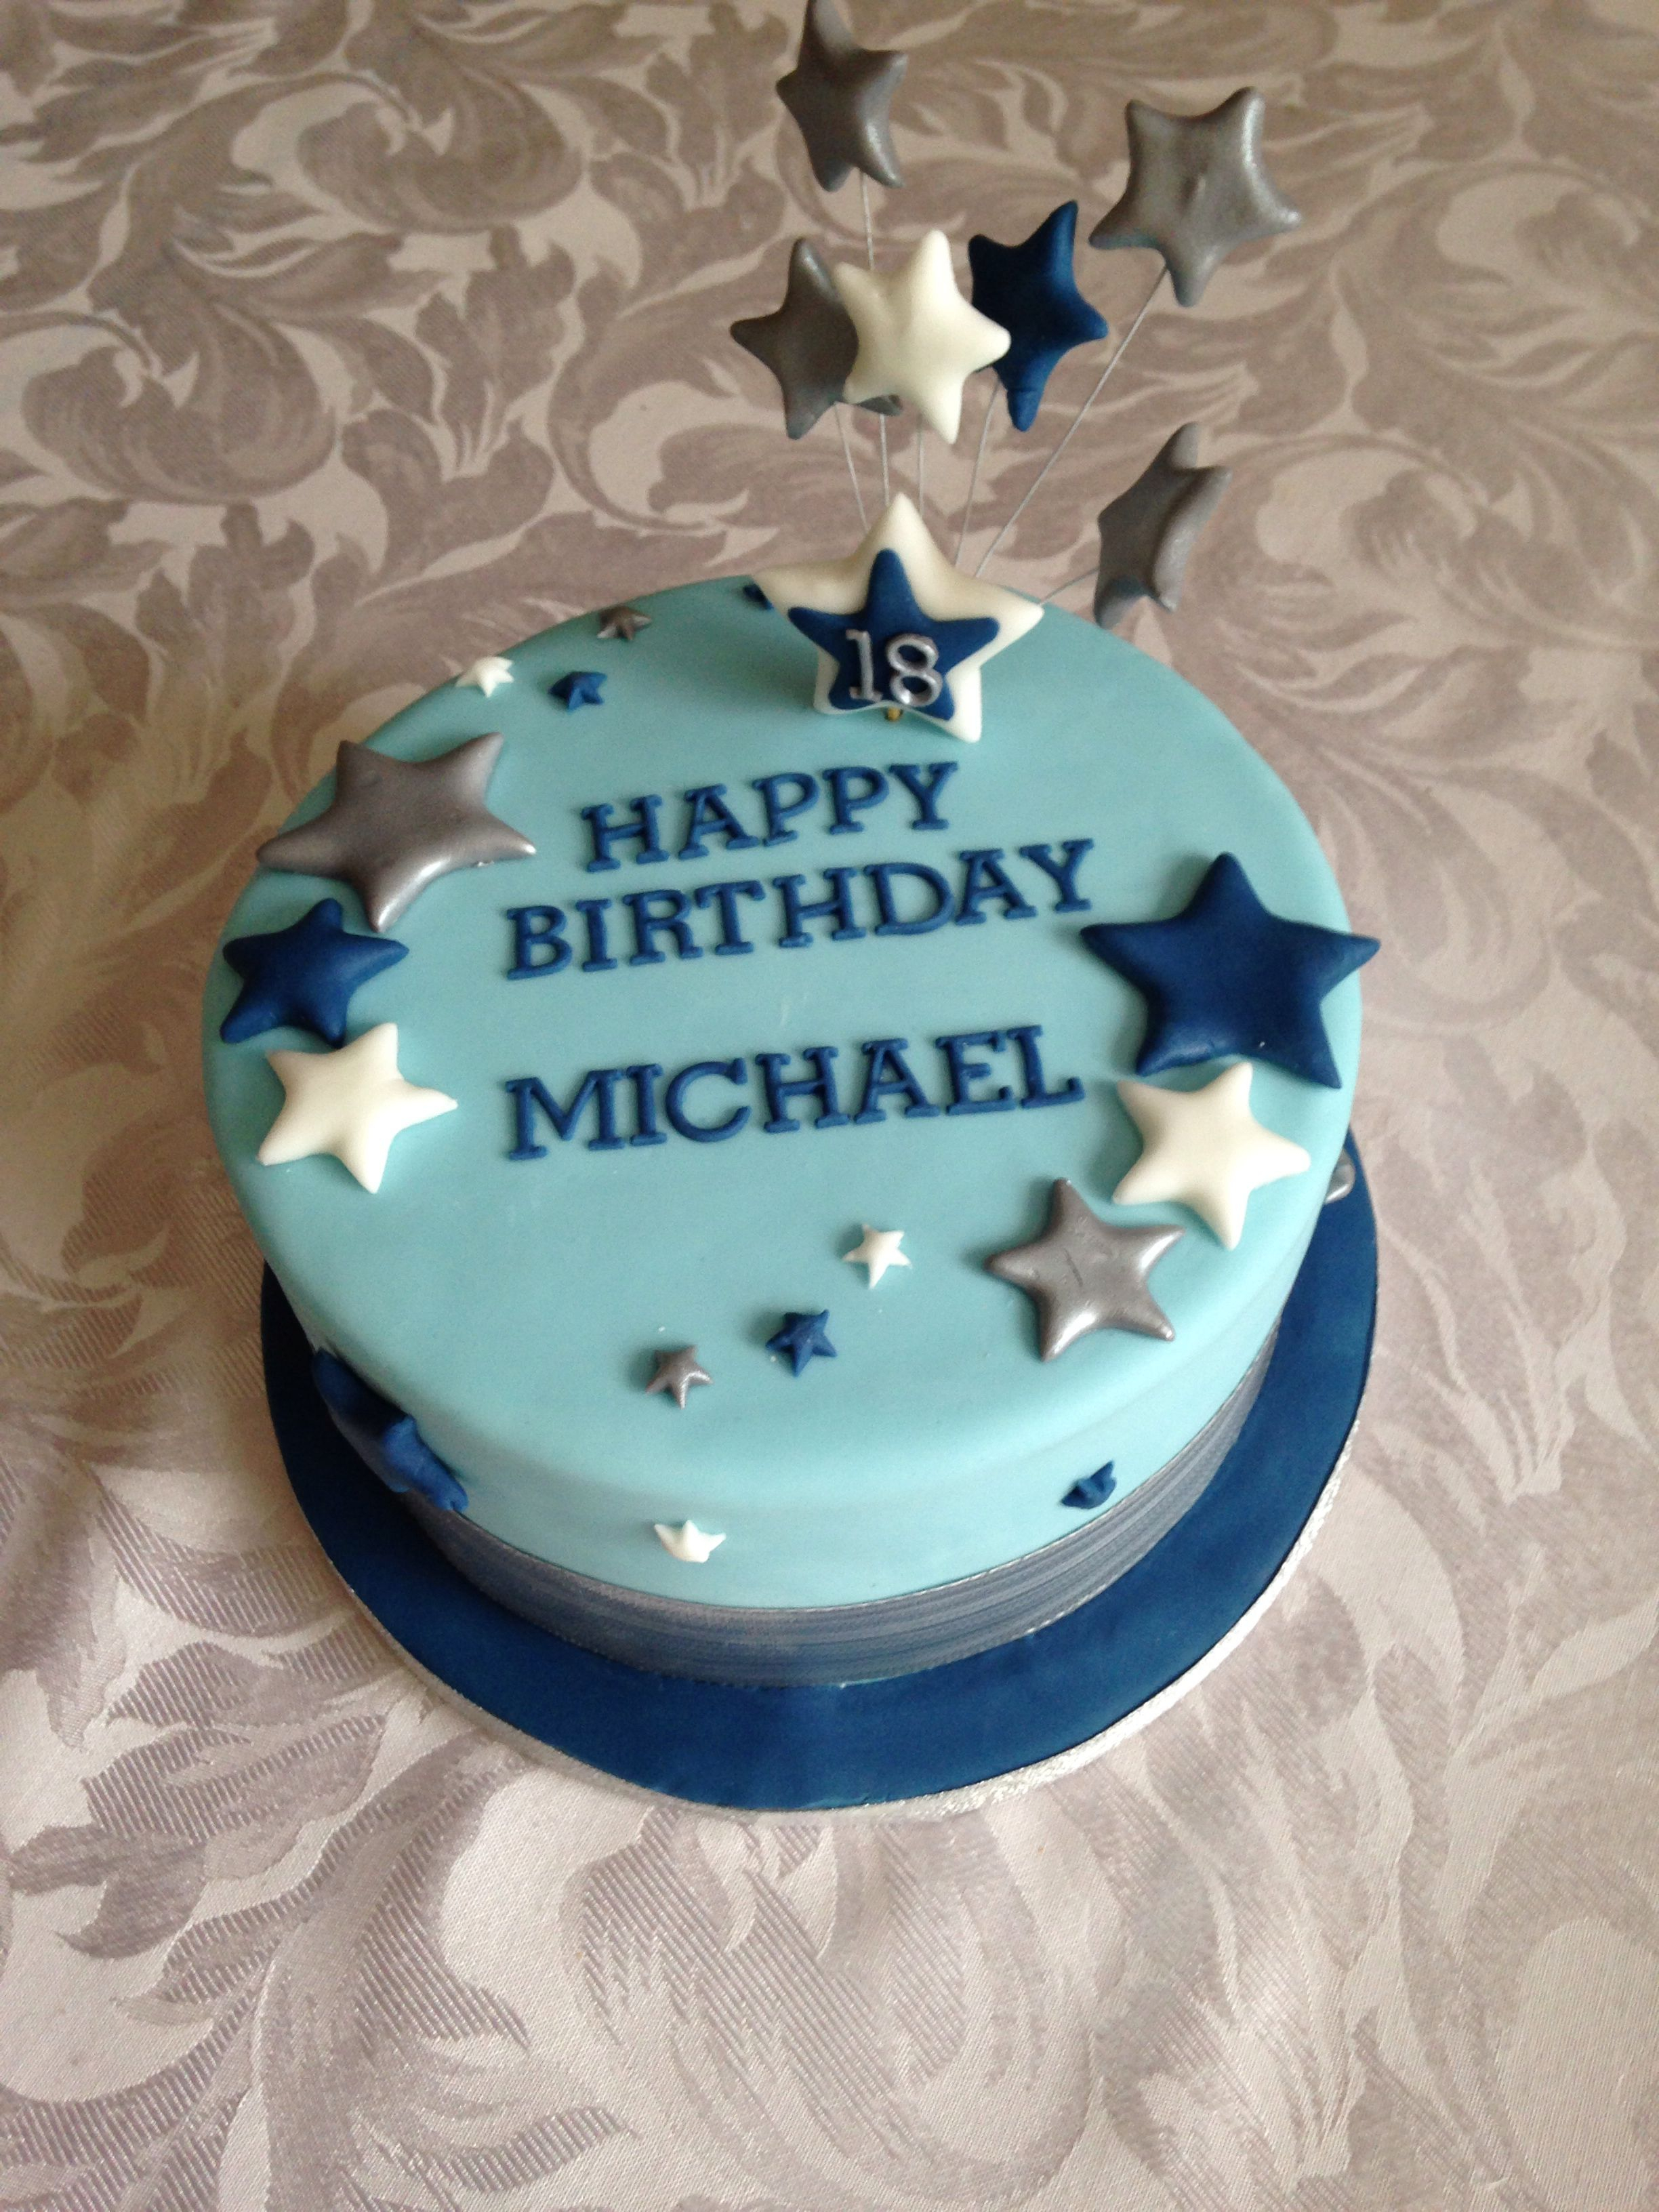 Simple Birthday Cakes 18th Cake For A Boy Prestons Party